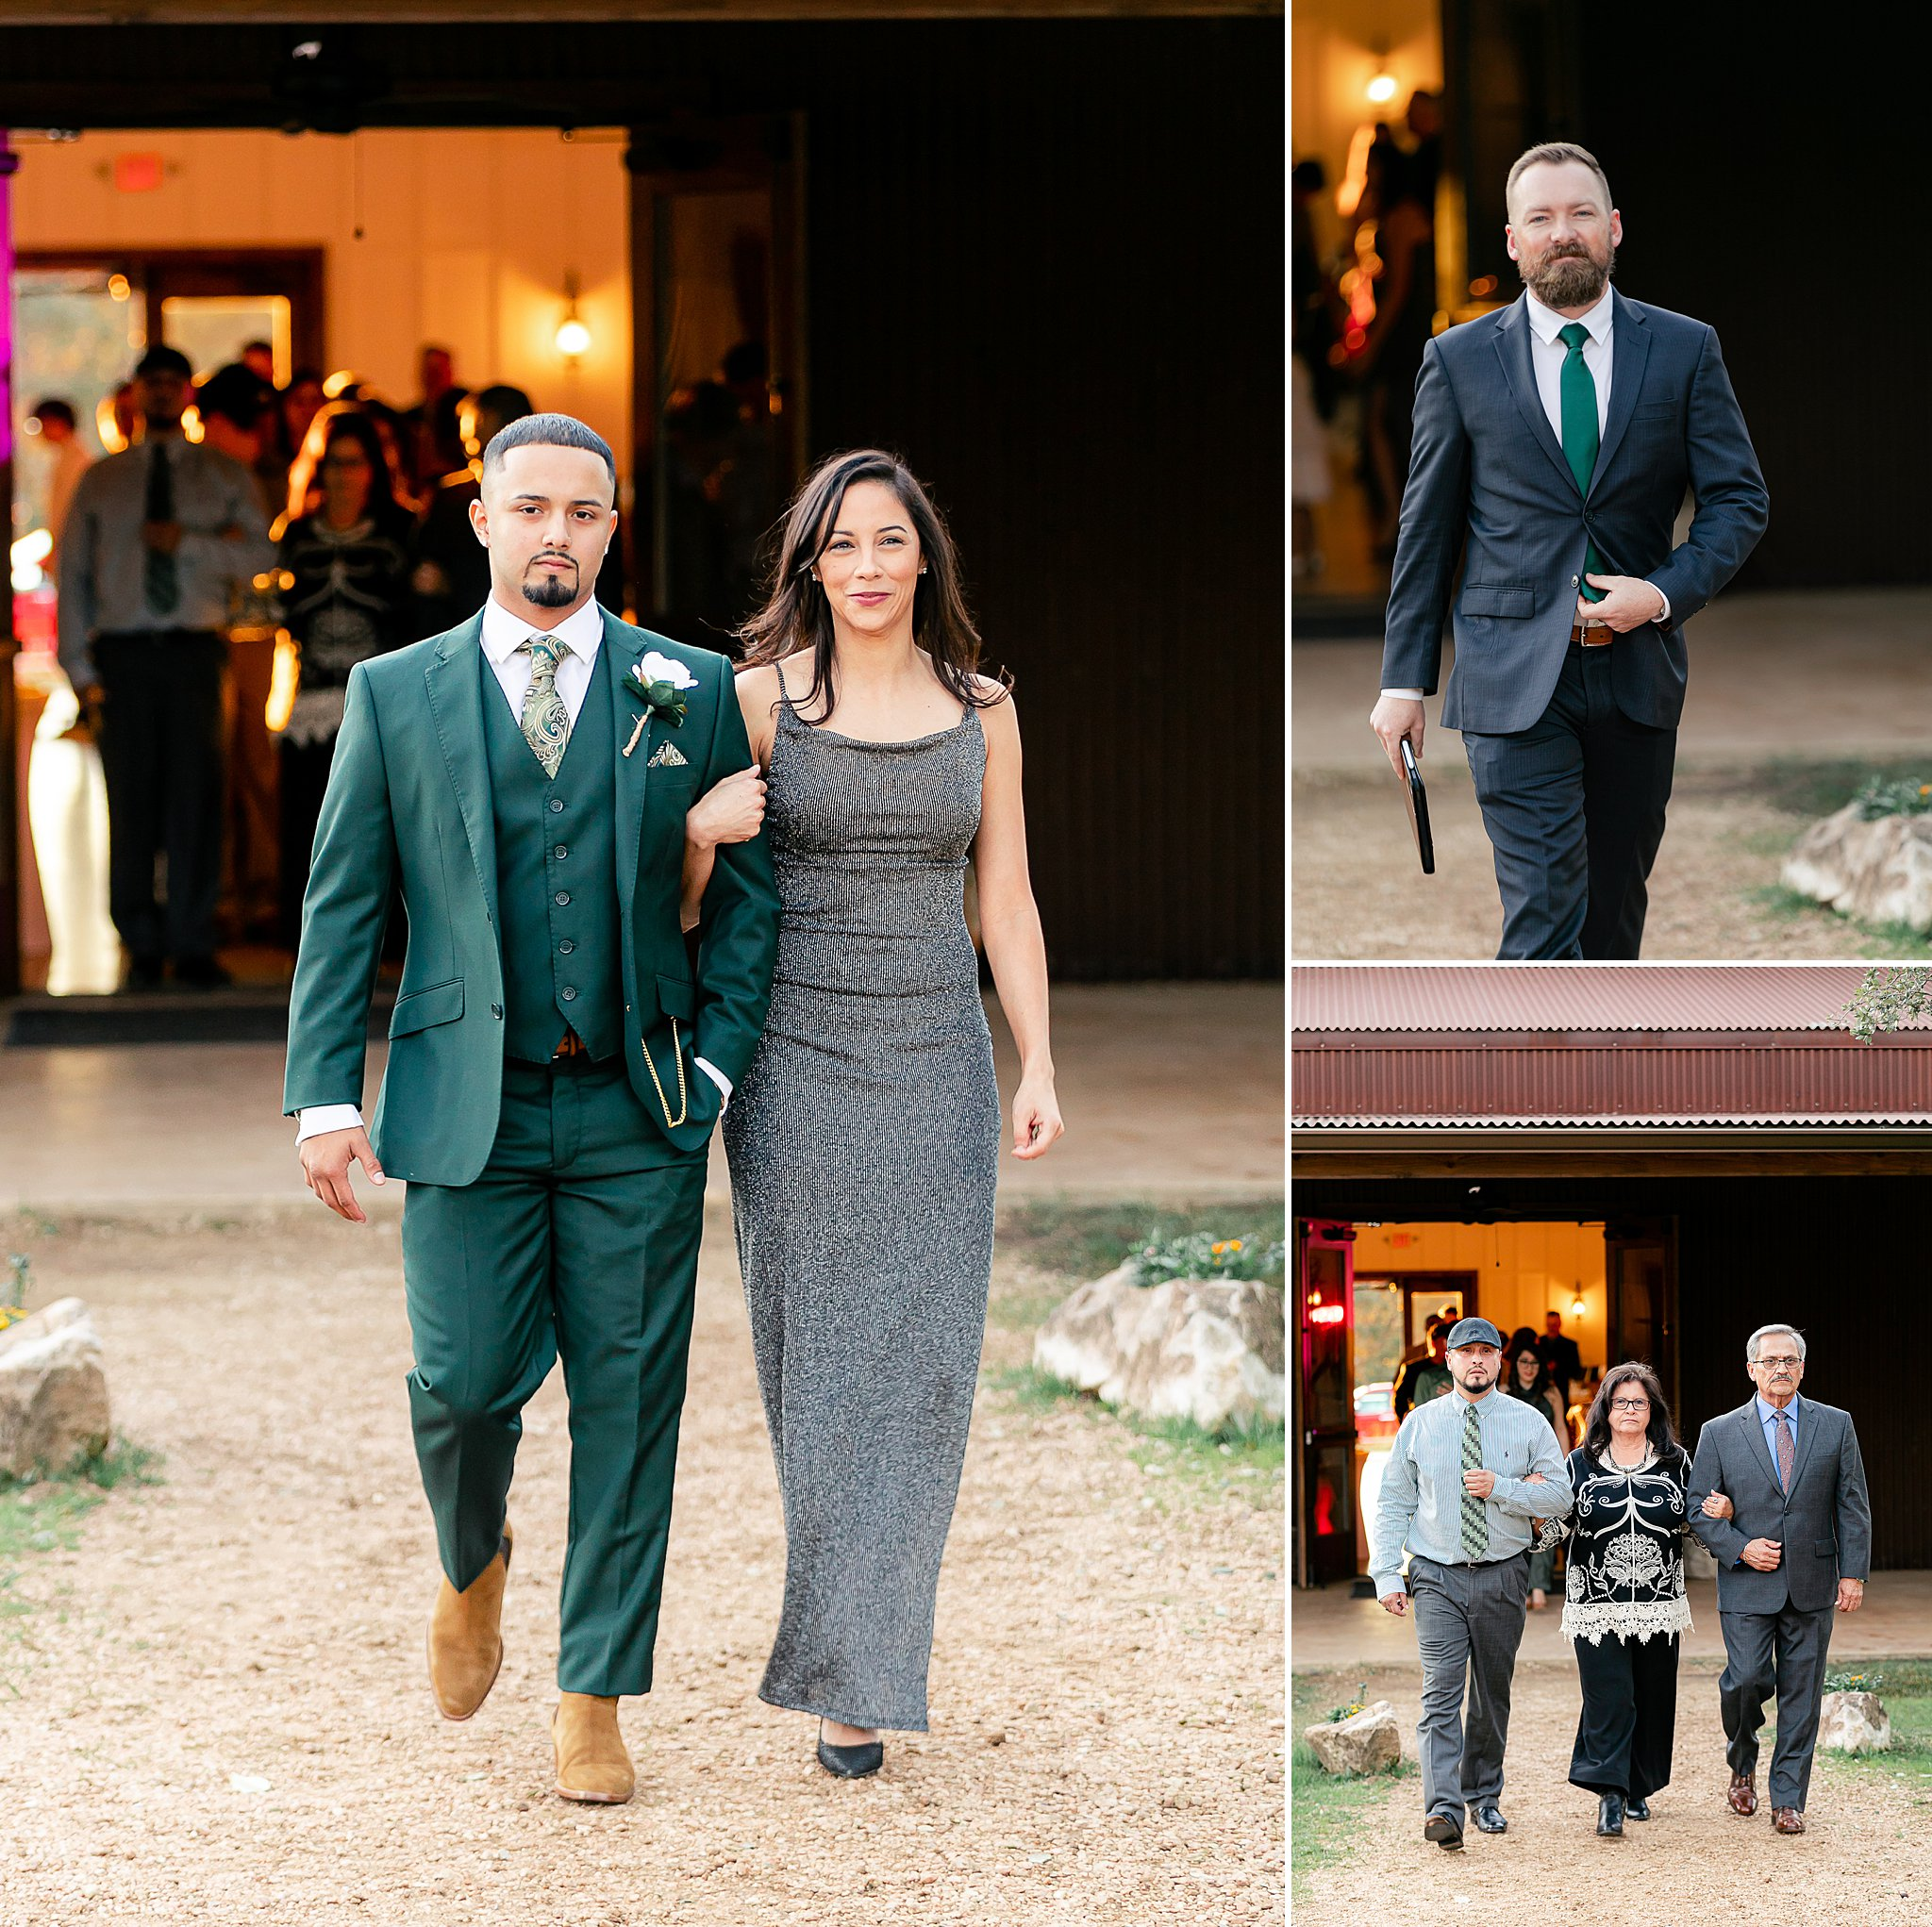 Carly-Barton-Photography-Texas-Wedding-Photographer-Western-Sky-Wedding-Event-Venue-Emerald-Green-Theme_0009.jpg